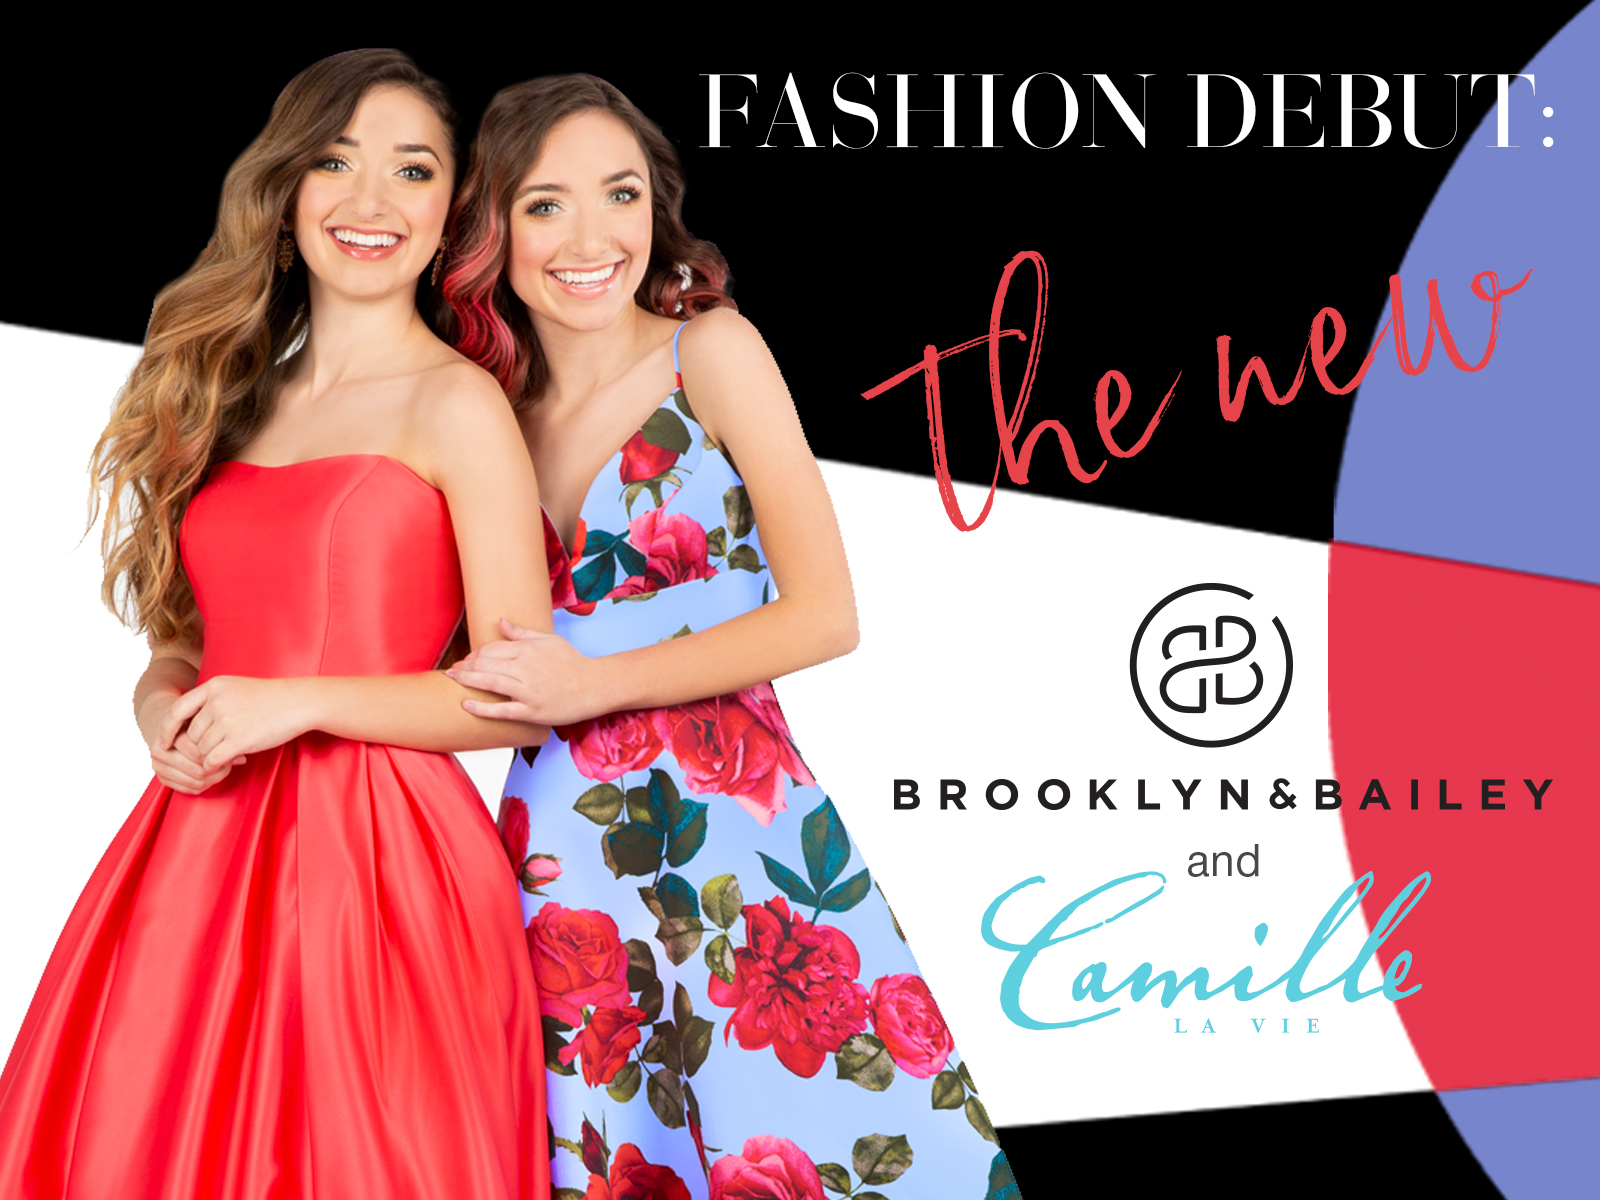 The Brooklyn and Bailey and Camille La Vie Prom Dress Collection